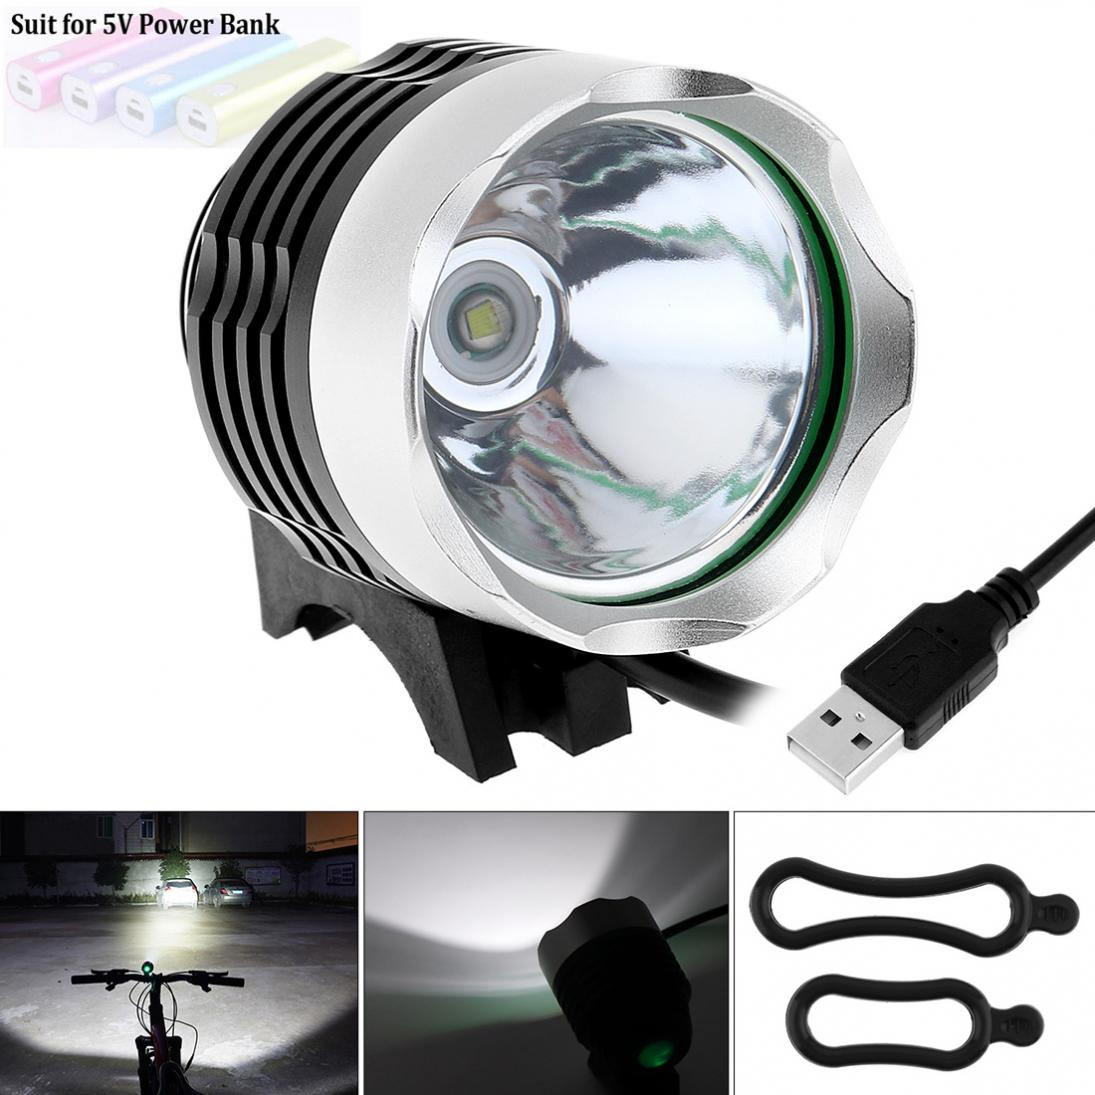 3 Modes USB-powered 500LM LED LB-XL T6LED Bike Bicycle Headlamp Light Lamp Aluminum alloy for Bicycle Sport Cycling